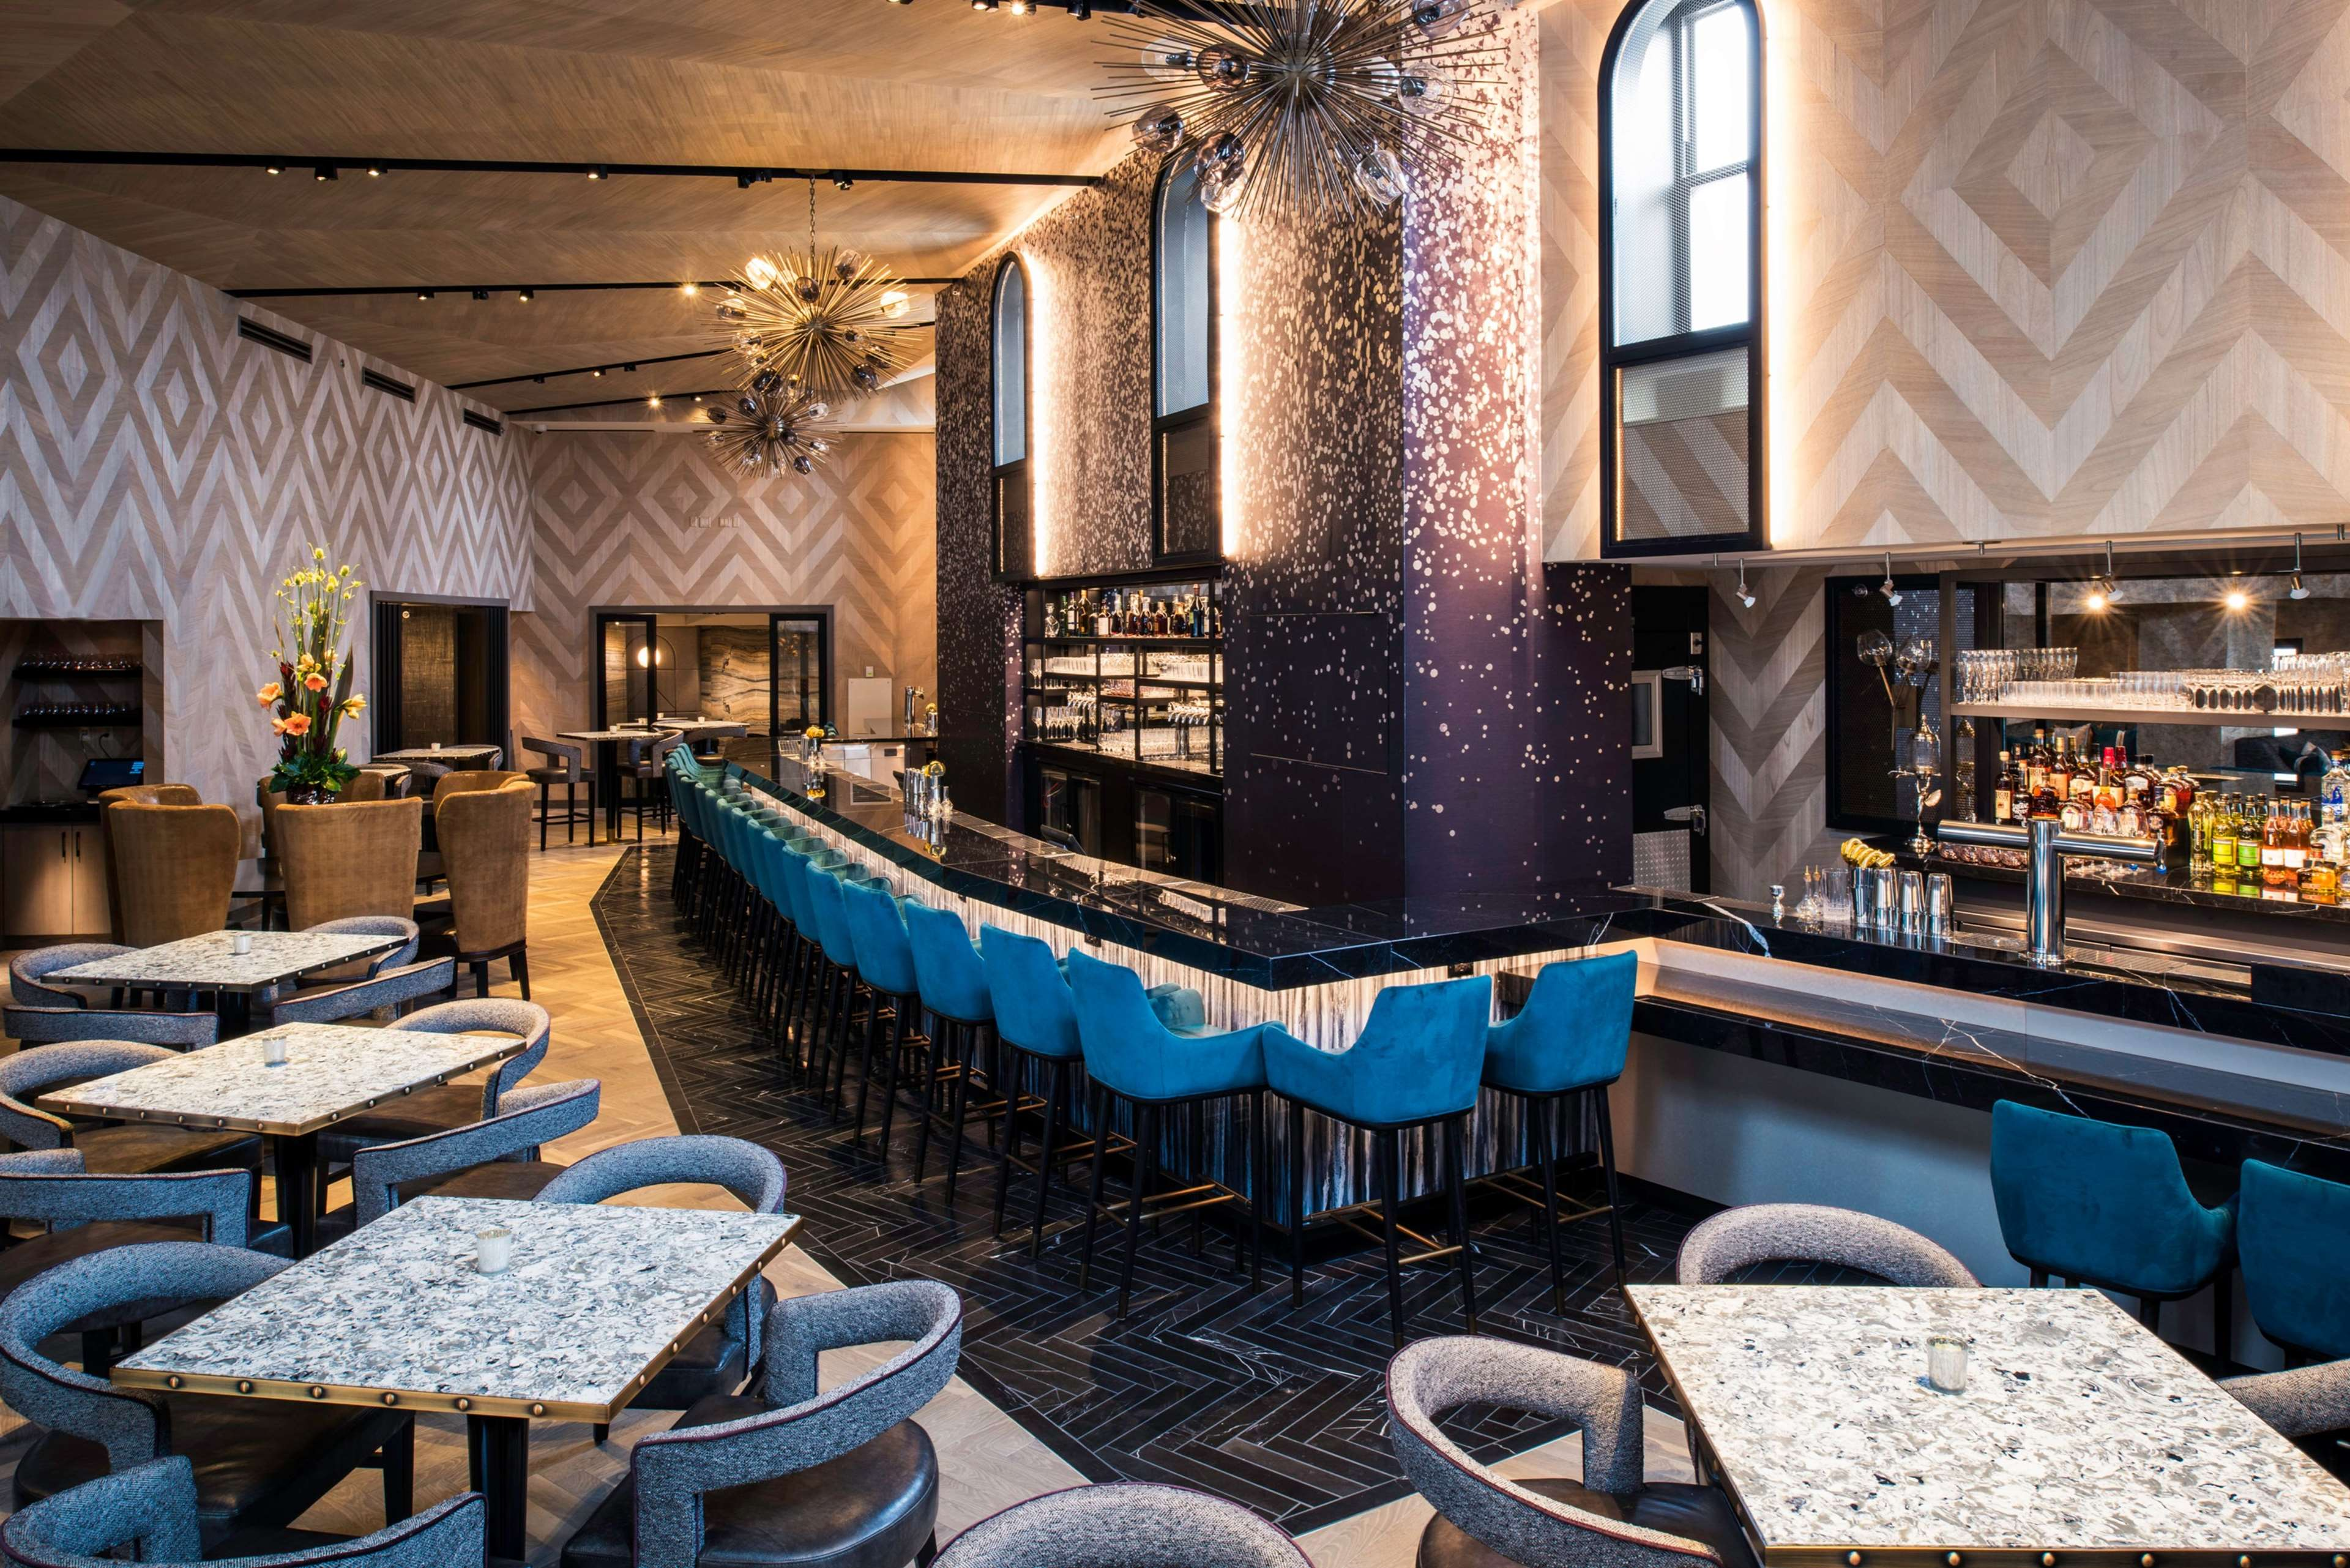 LondonHouse Chicago, Curio Collection by Hilton image 46